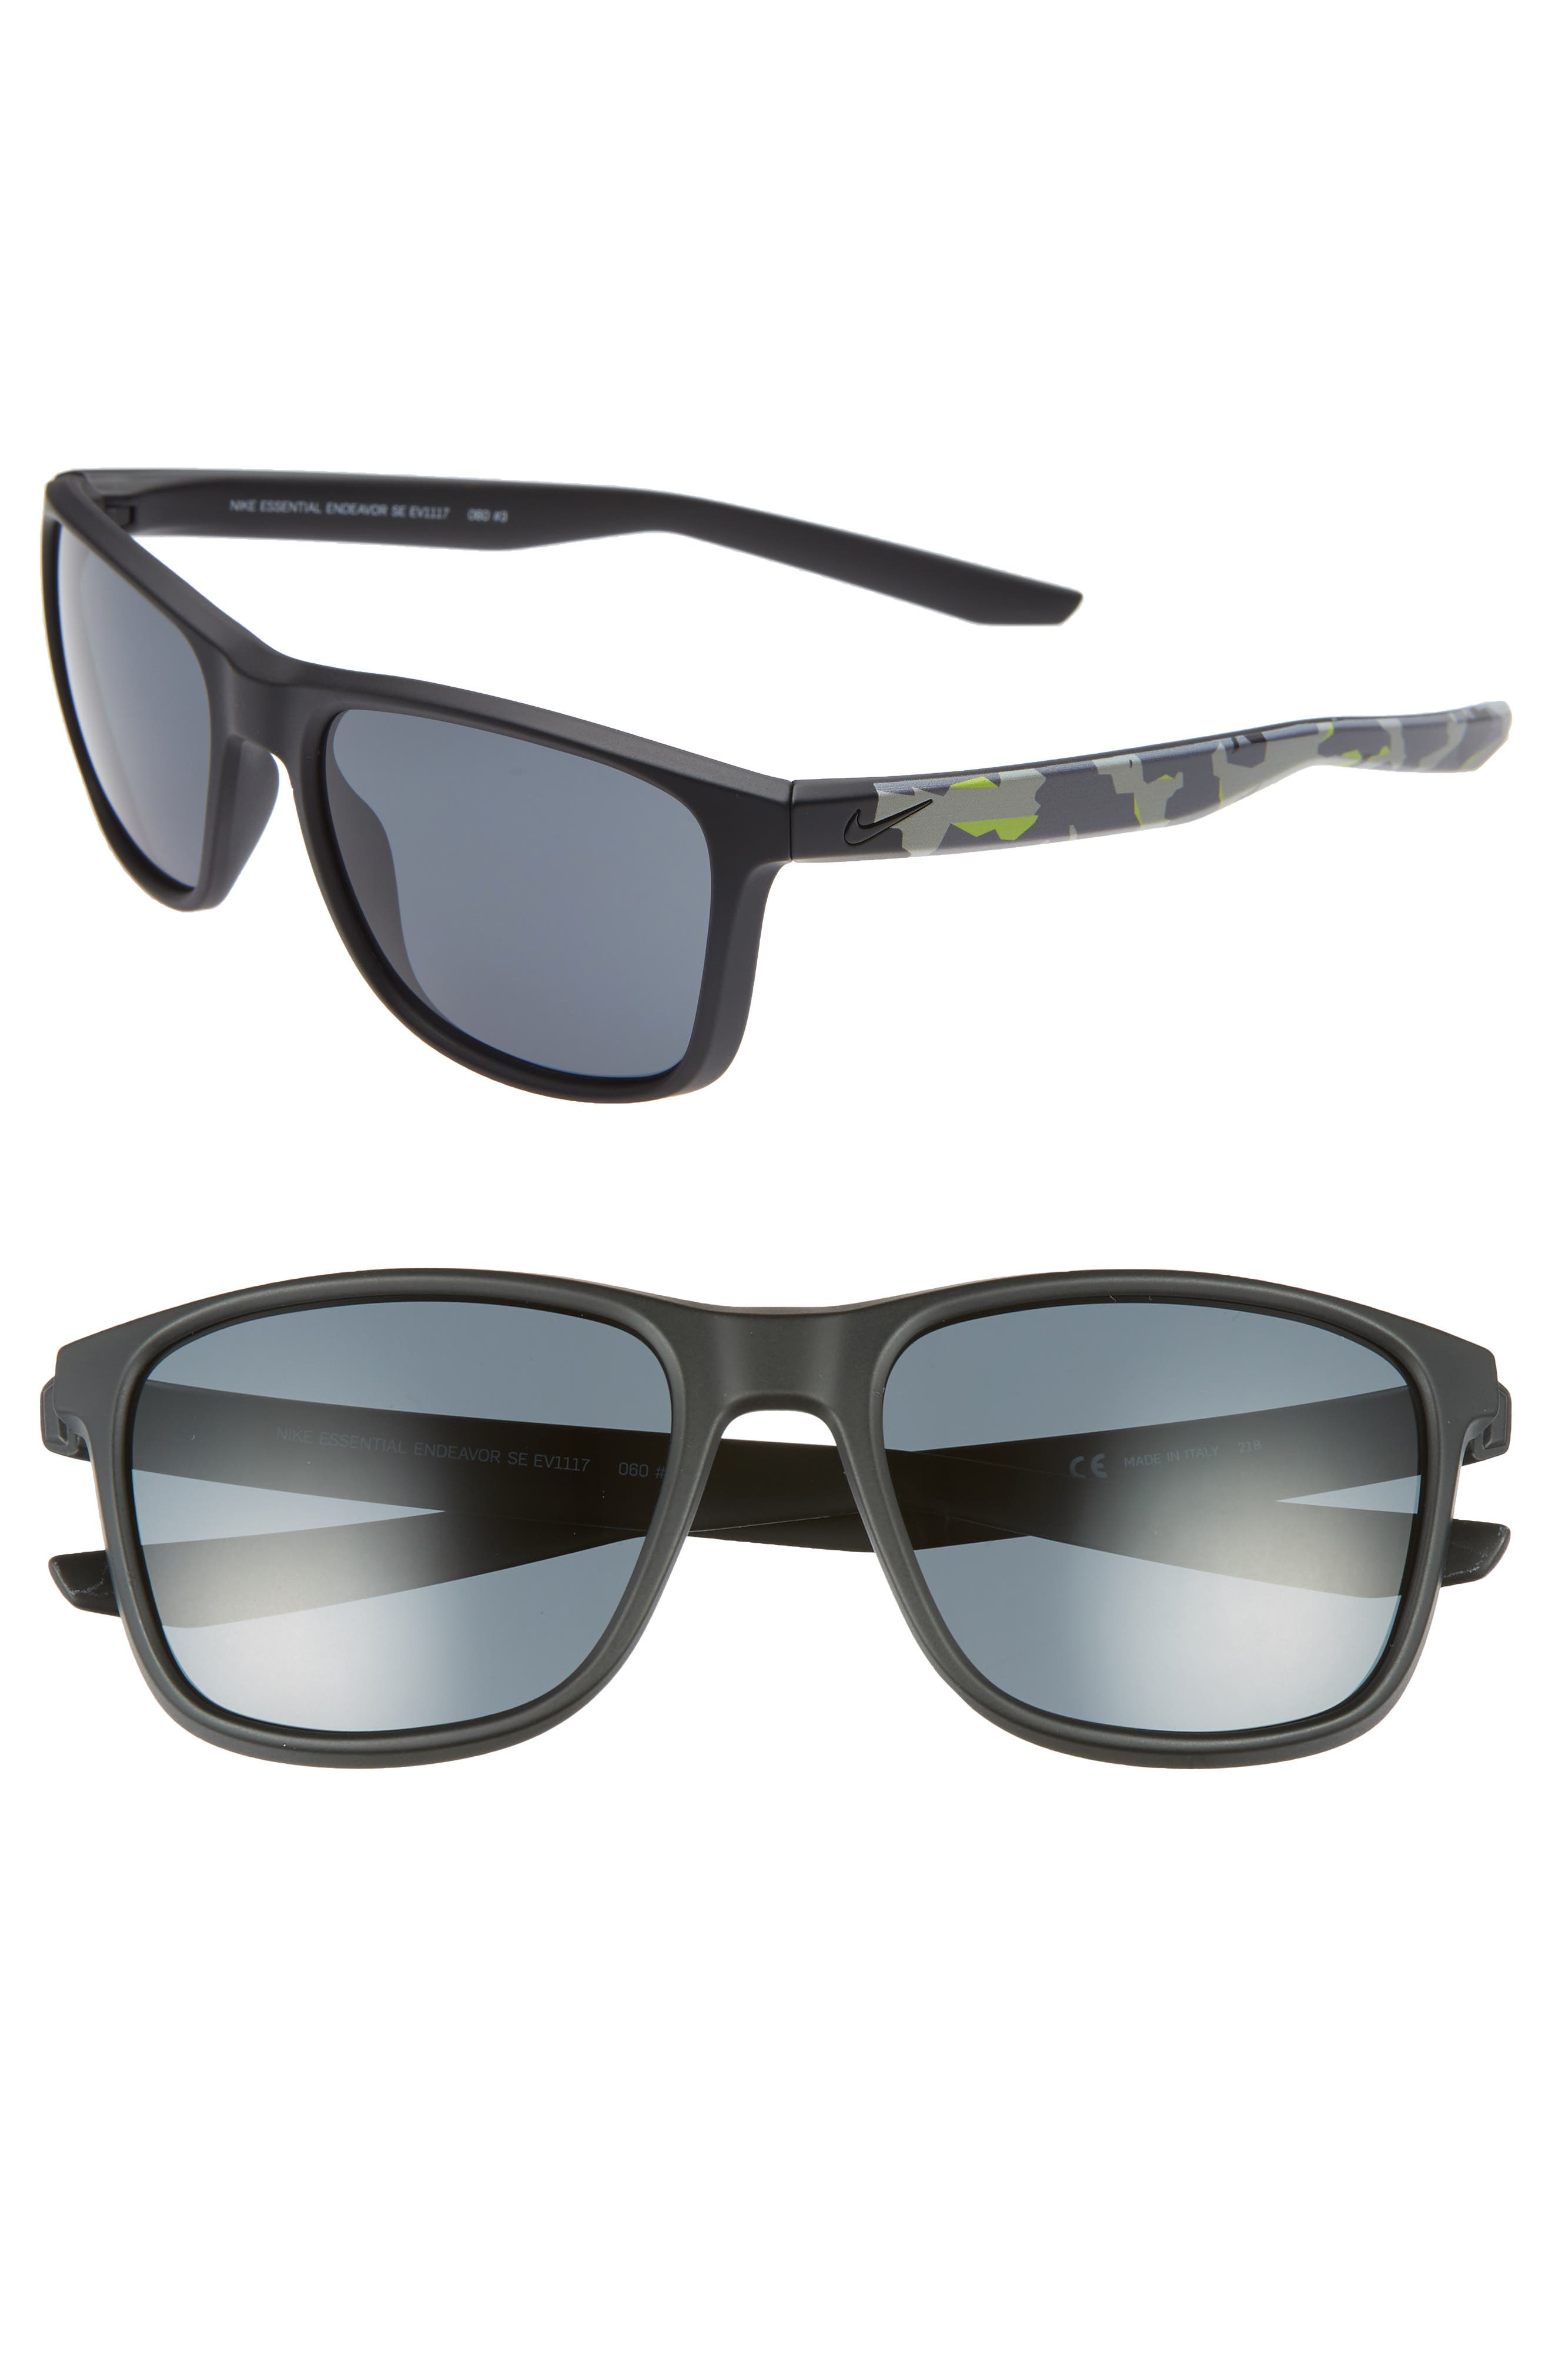 Nike Essential Endeavor 57Mm Square Sunglasses - Matte Black/ Dark Grey